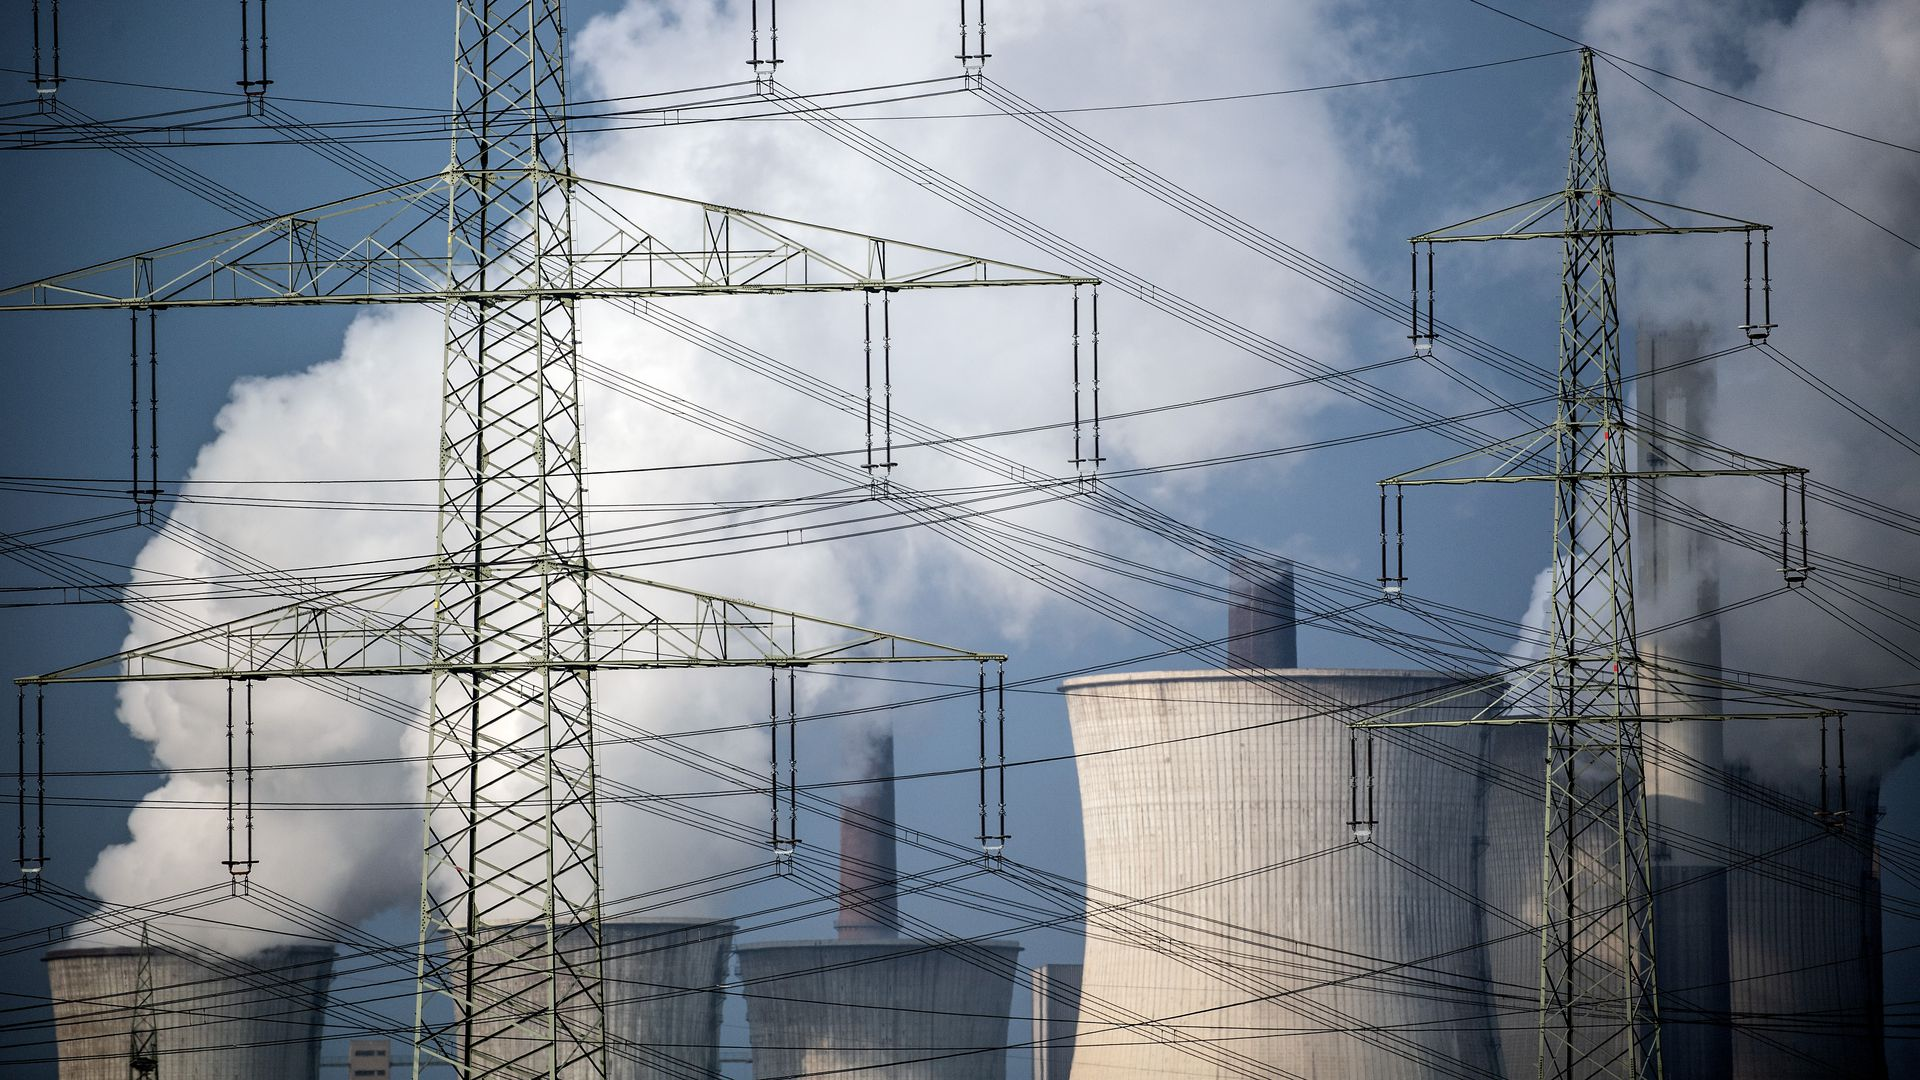 cooling towers of a coal-fired power plant